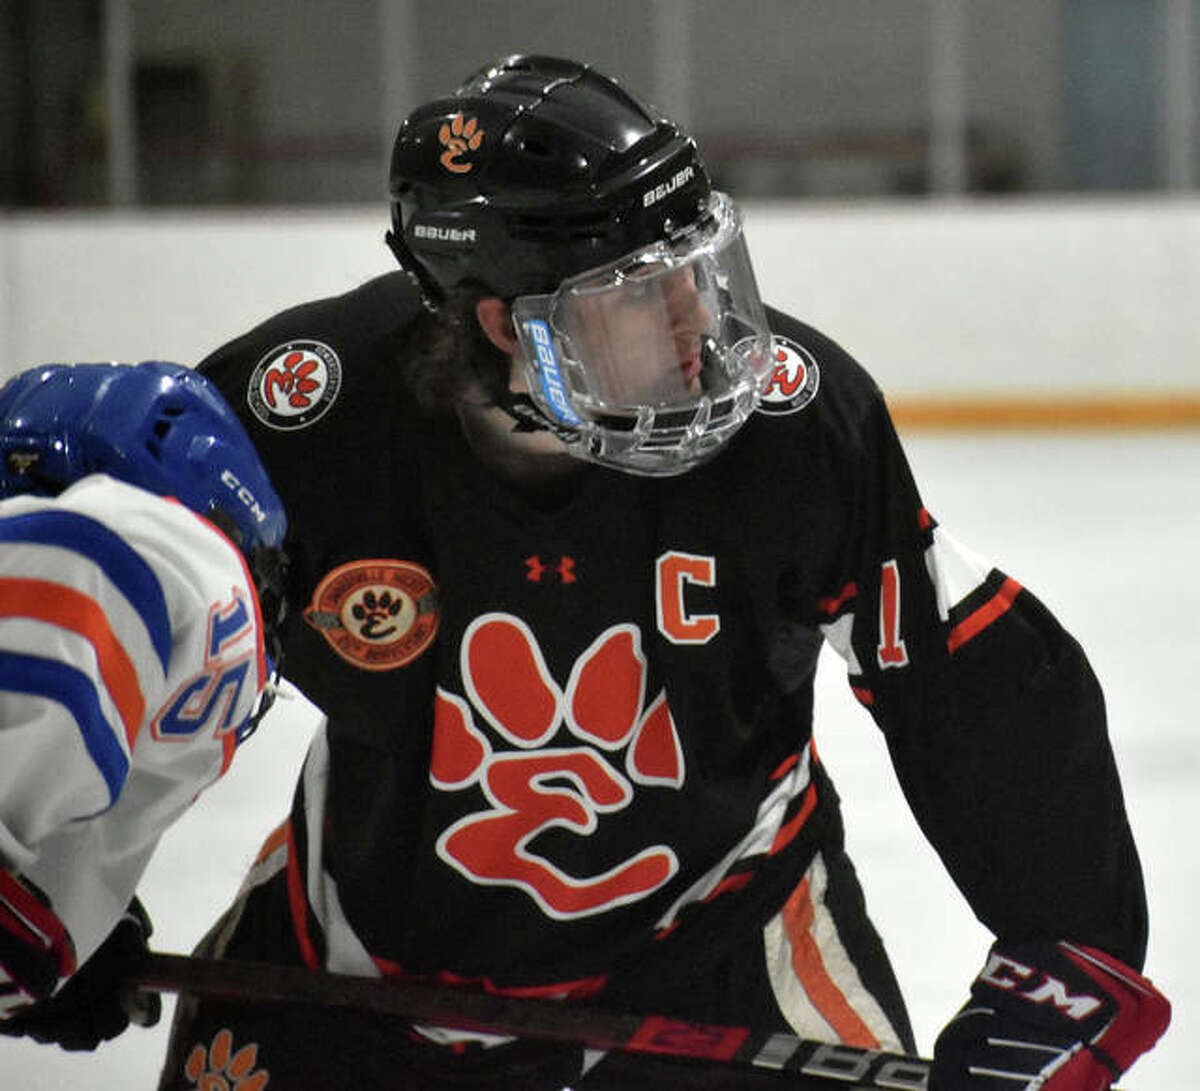 Edwardsville captain Cameron Gillen prepares to take a face-off during a game against Freeburg-Waterloo inside the East Alton Ice Arena.